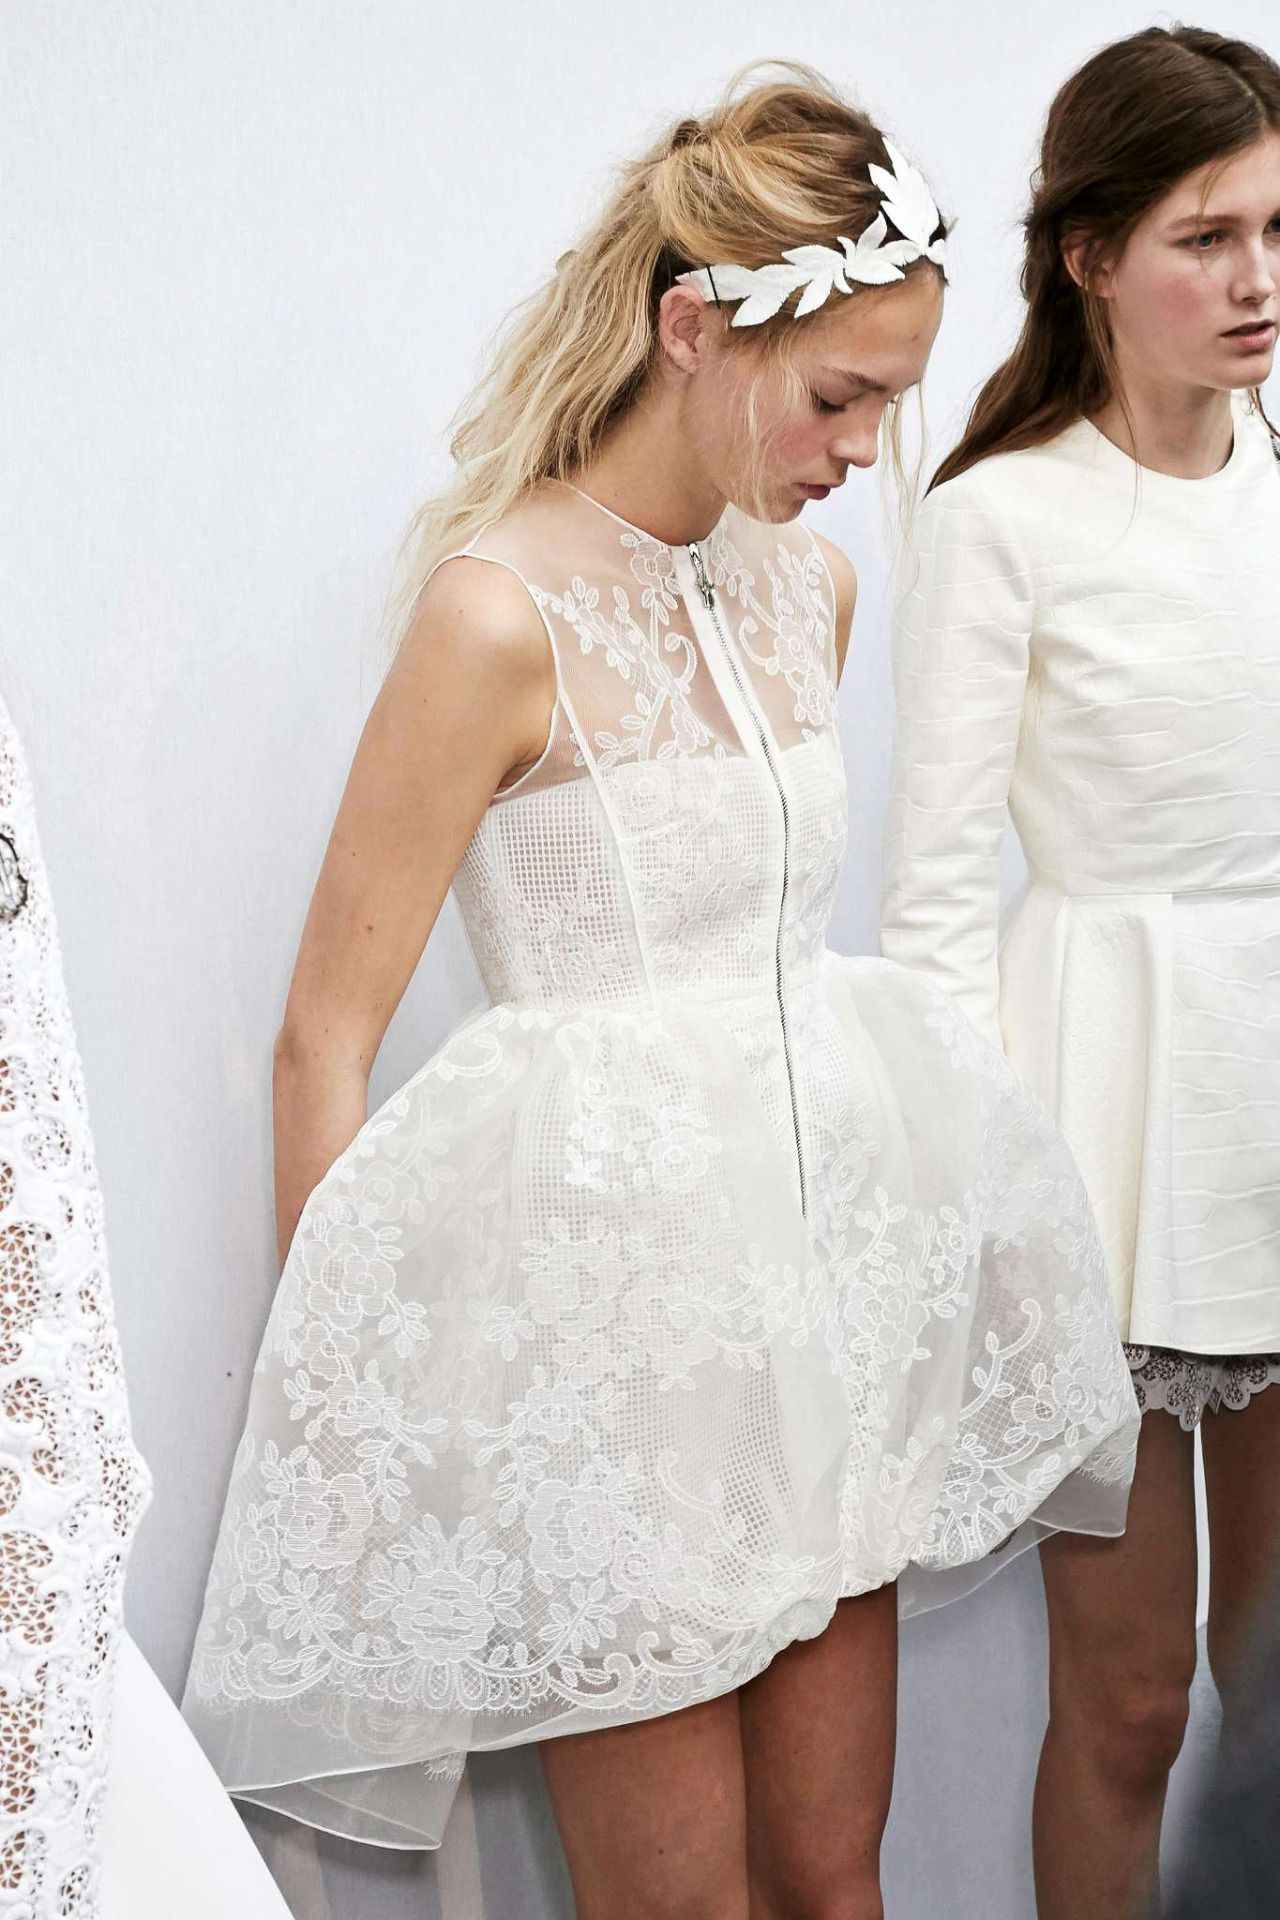 White short wedding dresses  Pin by Gsel on fashion  Pinterest  Minis White short wedding